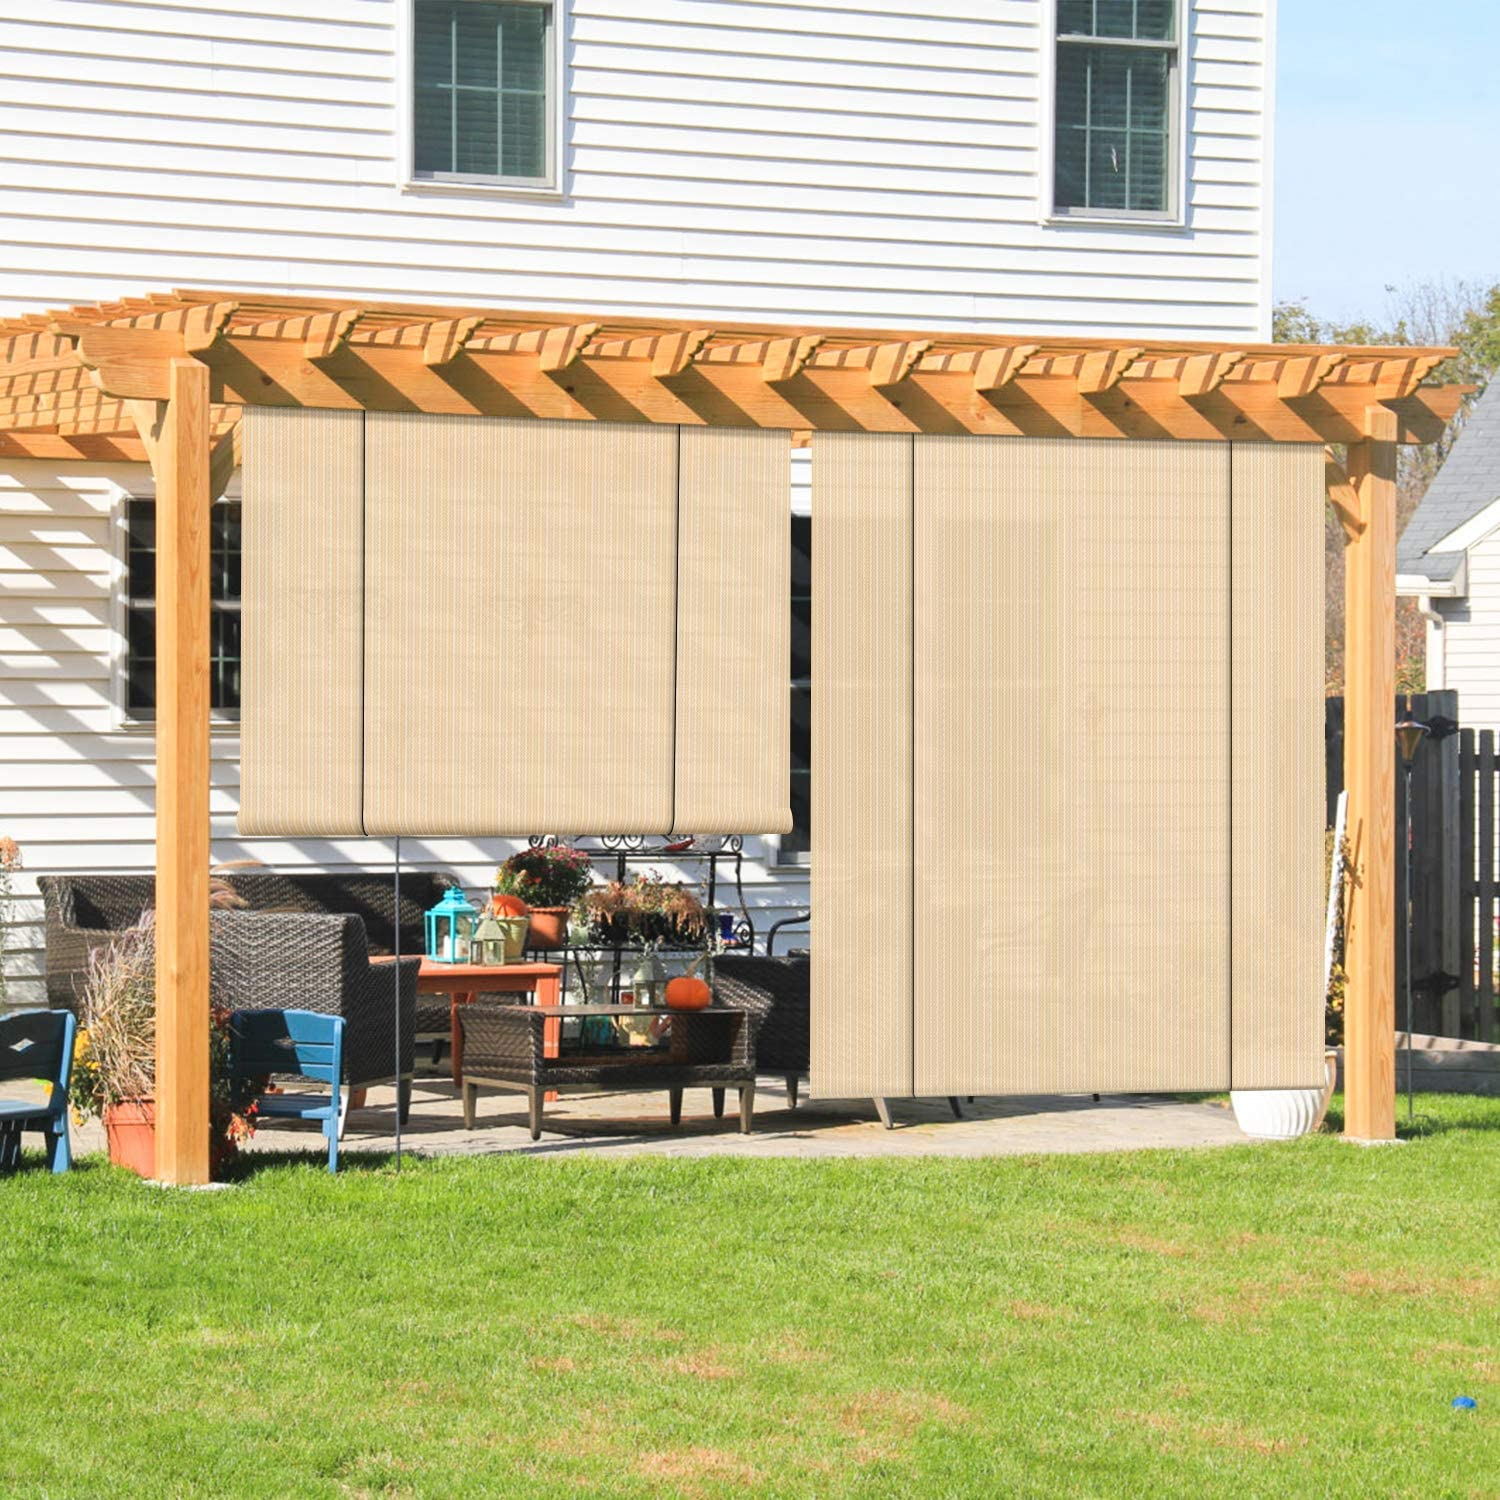 Coarbor Outdoor Roll up Shades Blinds for Porch Patio Shade Exterior Roller Shade Privacy Shade Screen for Deck Pergola Gazebo Beige 8'W x 6'H